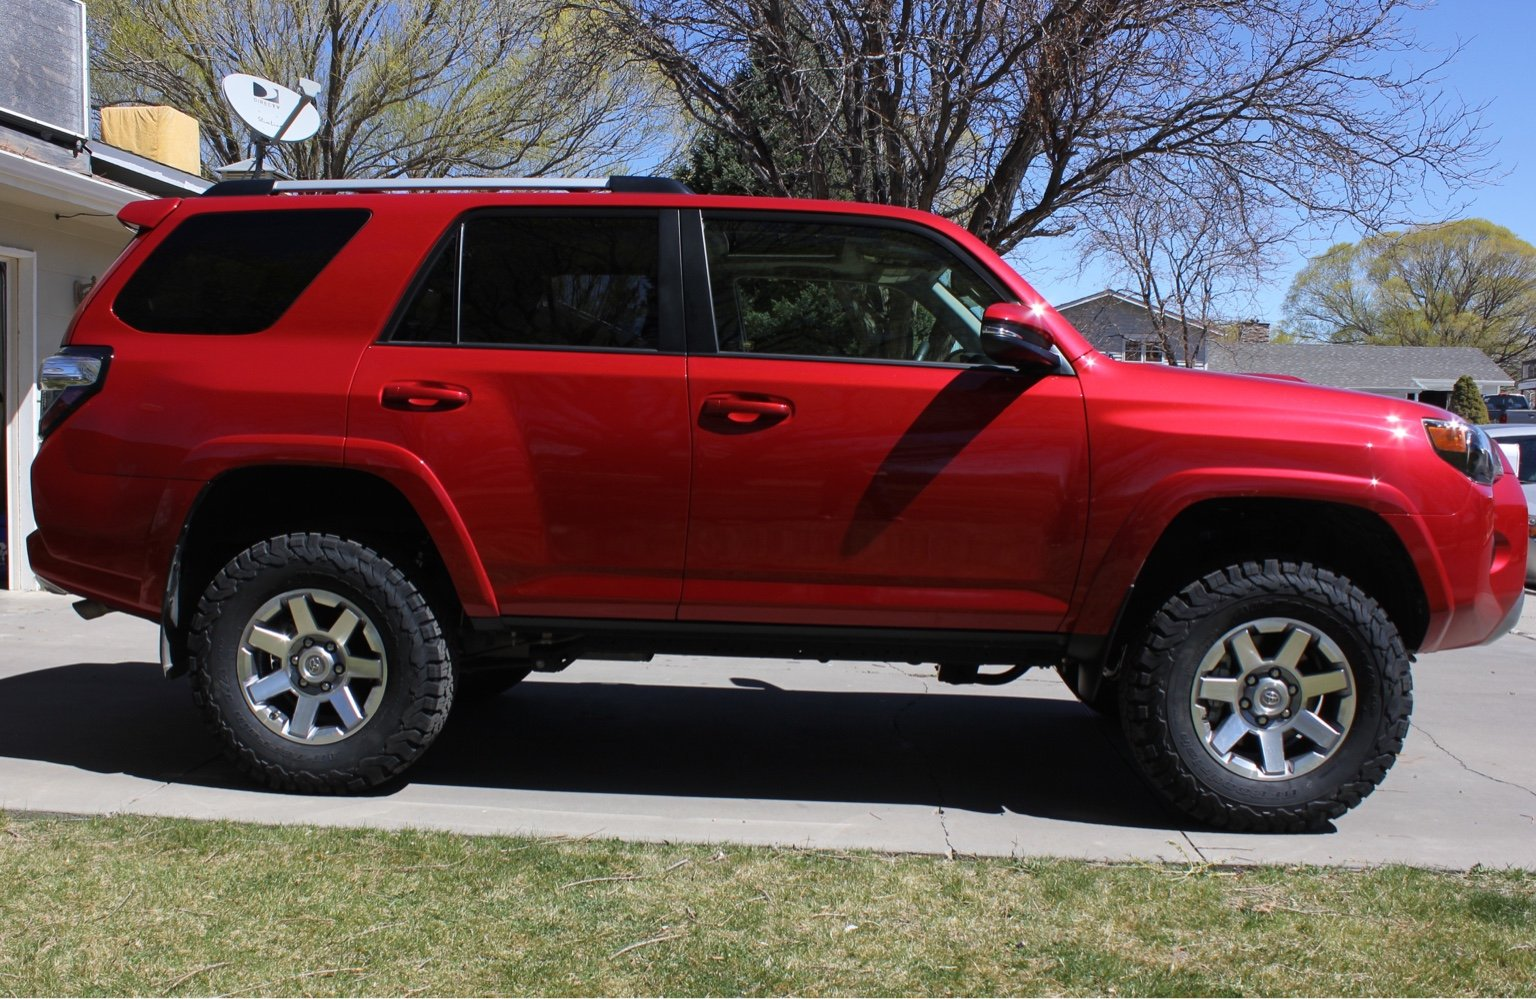 Barcelona Red 4runners Let S See Them Page 9 Toyota